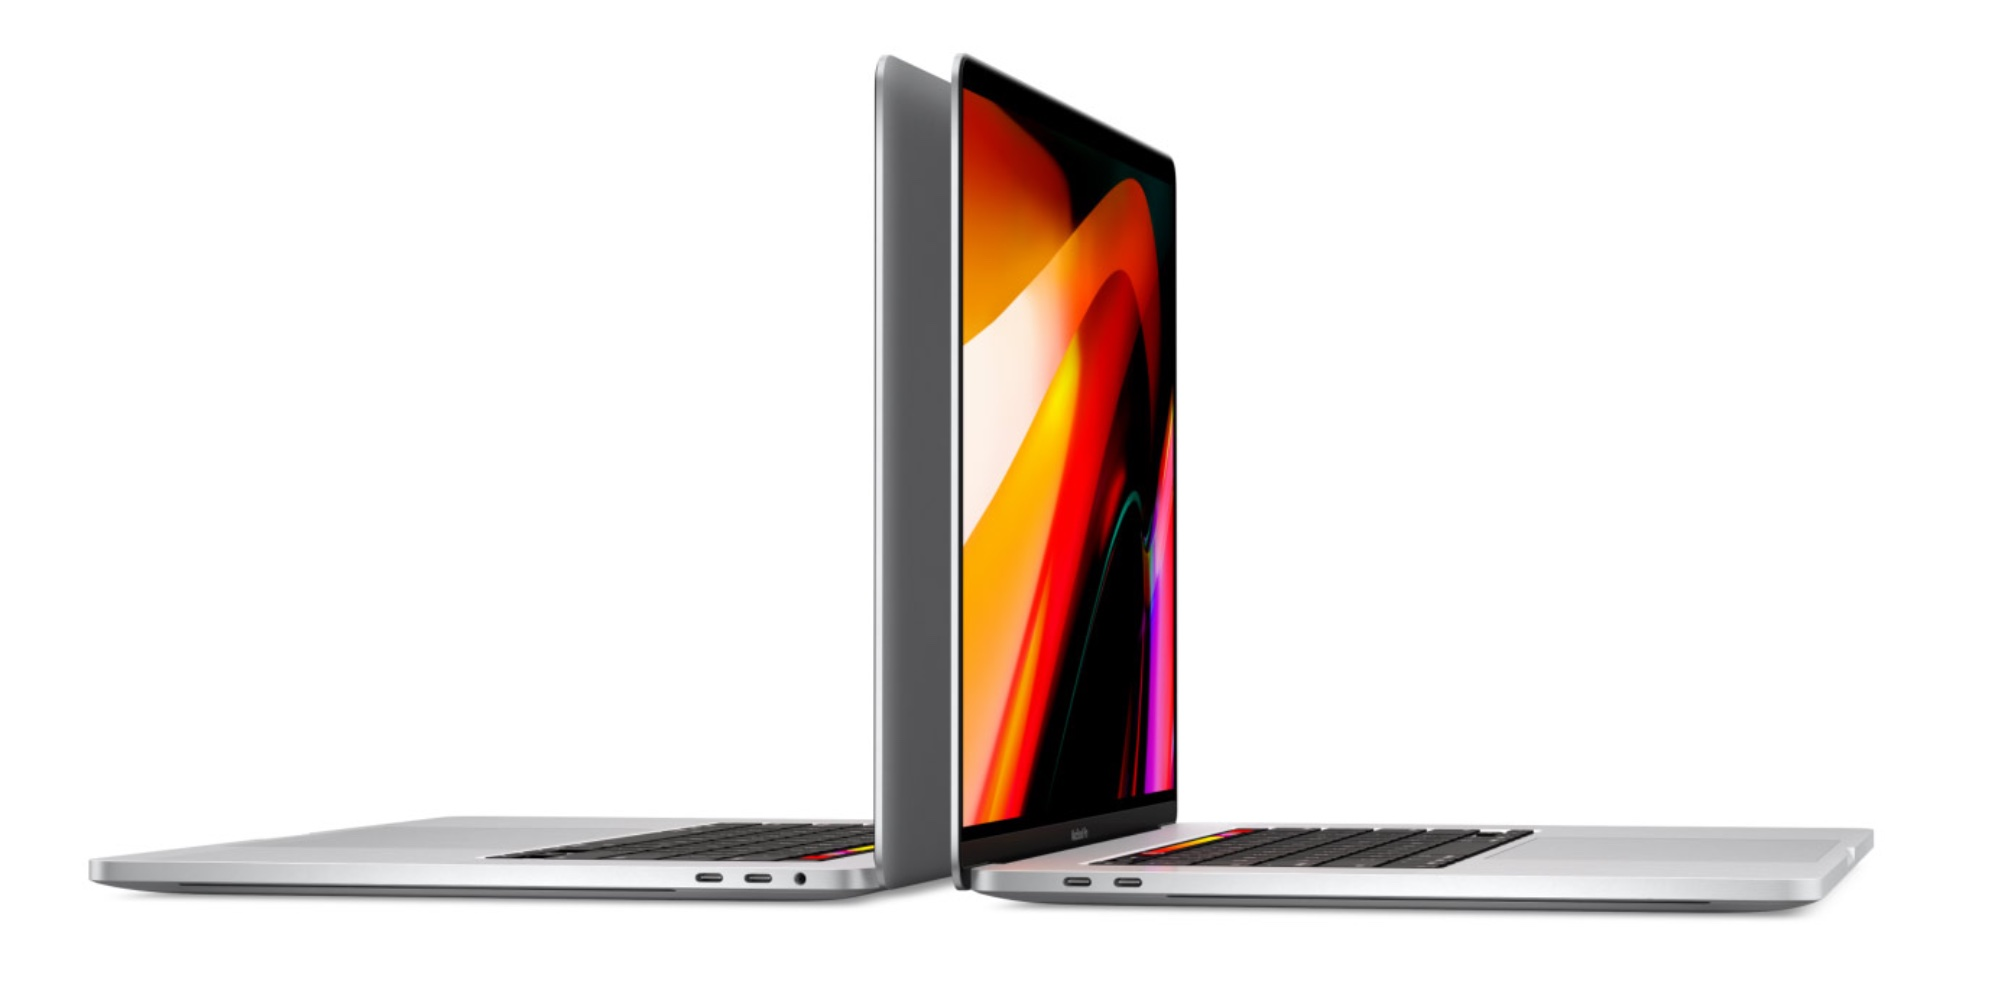 16-inch MacBook Pro includes exclusive colorful wallpapers, download here